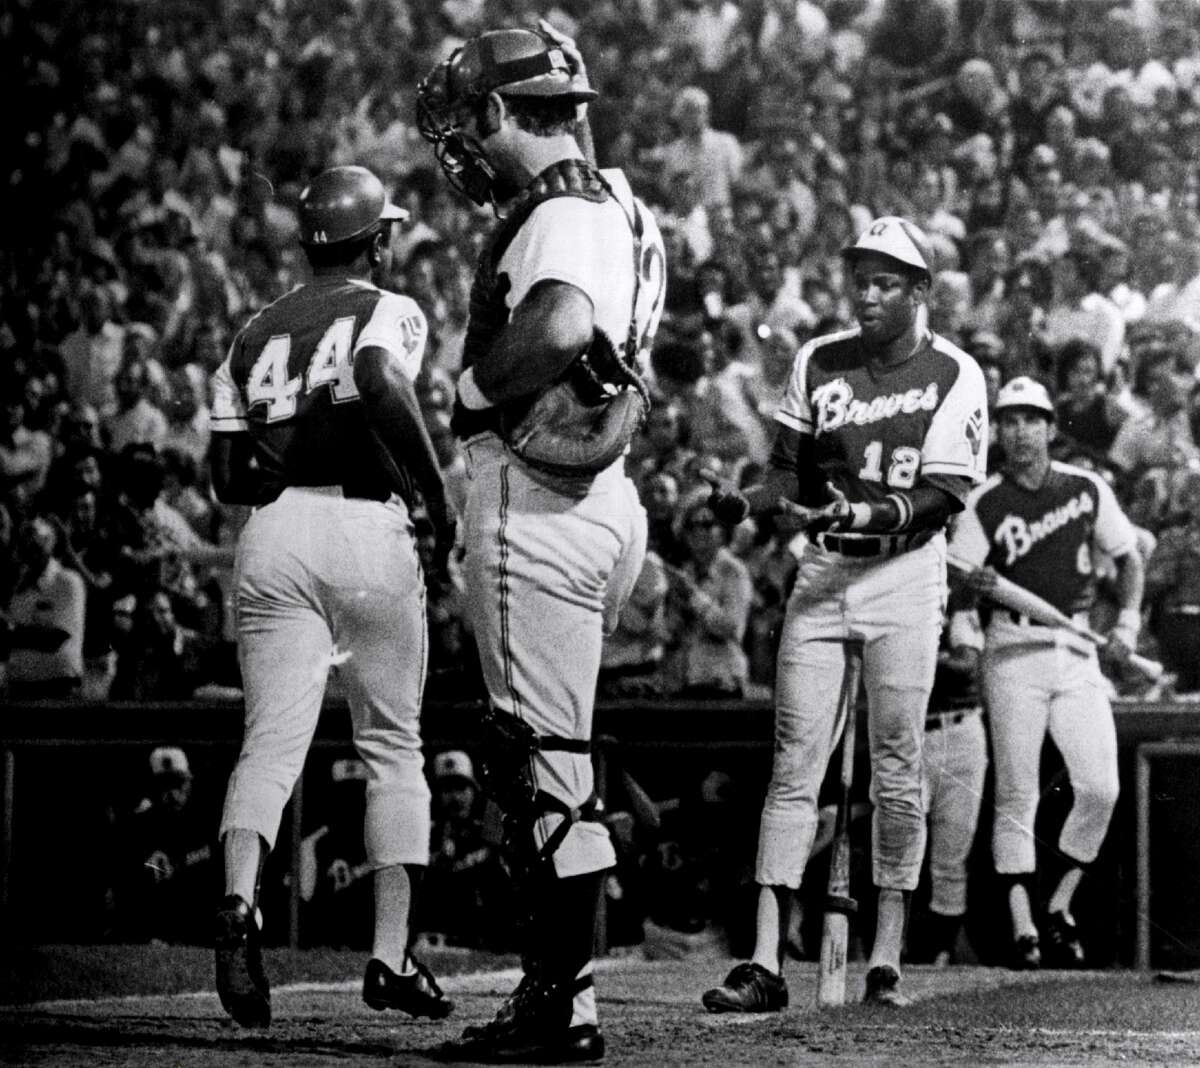 Dusty Baker of the Atlanta Braves congratulates teammate Hank Aaron after Aaron's 703rd home run on Aug. 17, 1973. (Photo by Sporting News via Getty Images via Getty Images)